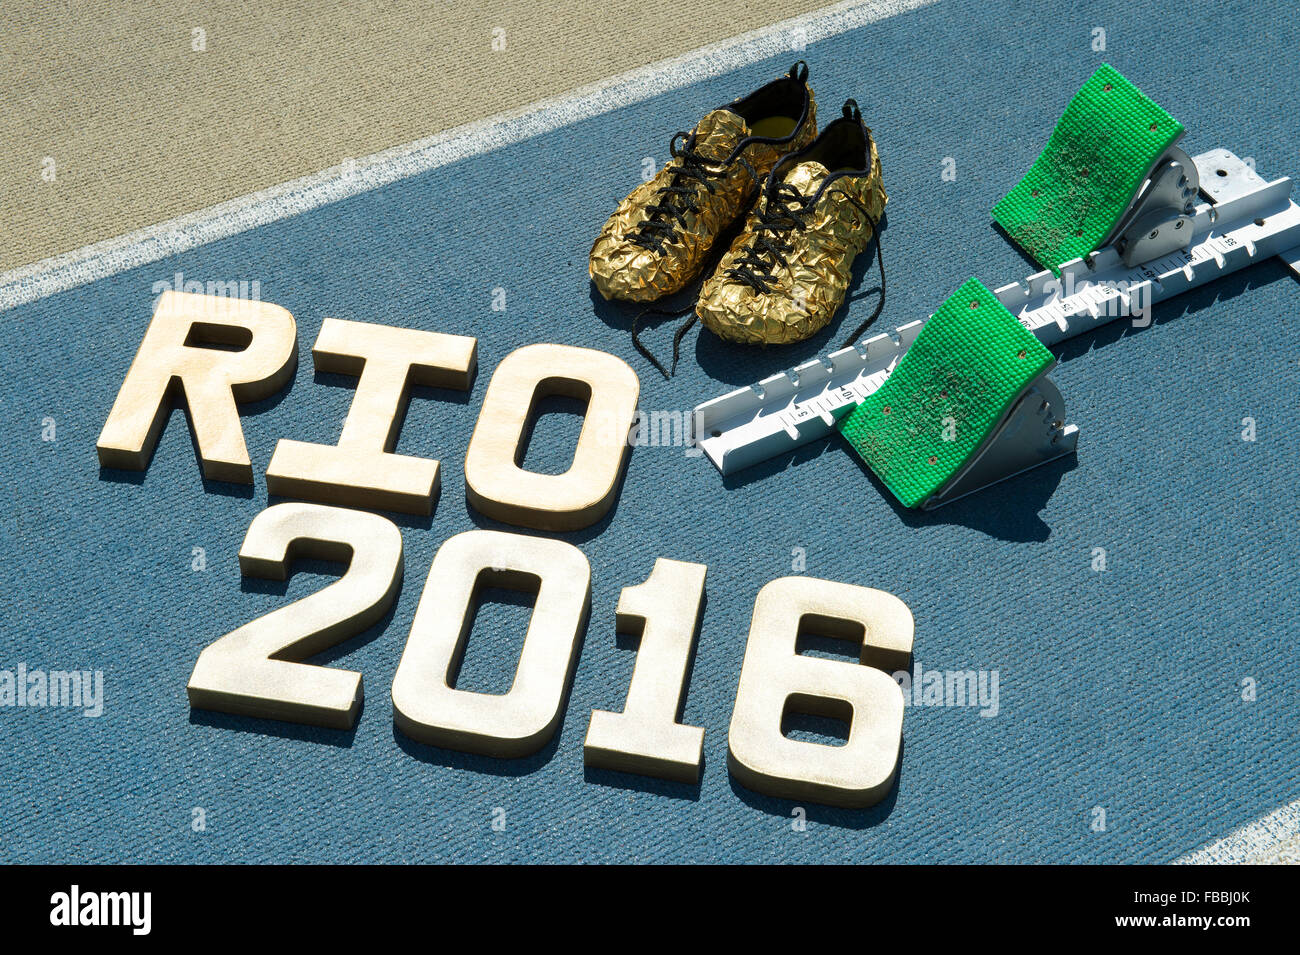 NEW YORK CITY, USA - AUGUST 20, 2015: Gold Rio 2016 message shines next to running shoes and starting blocks at - Stock Image